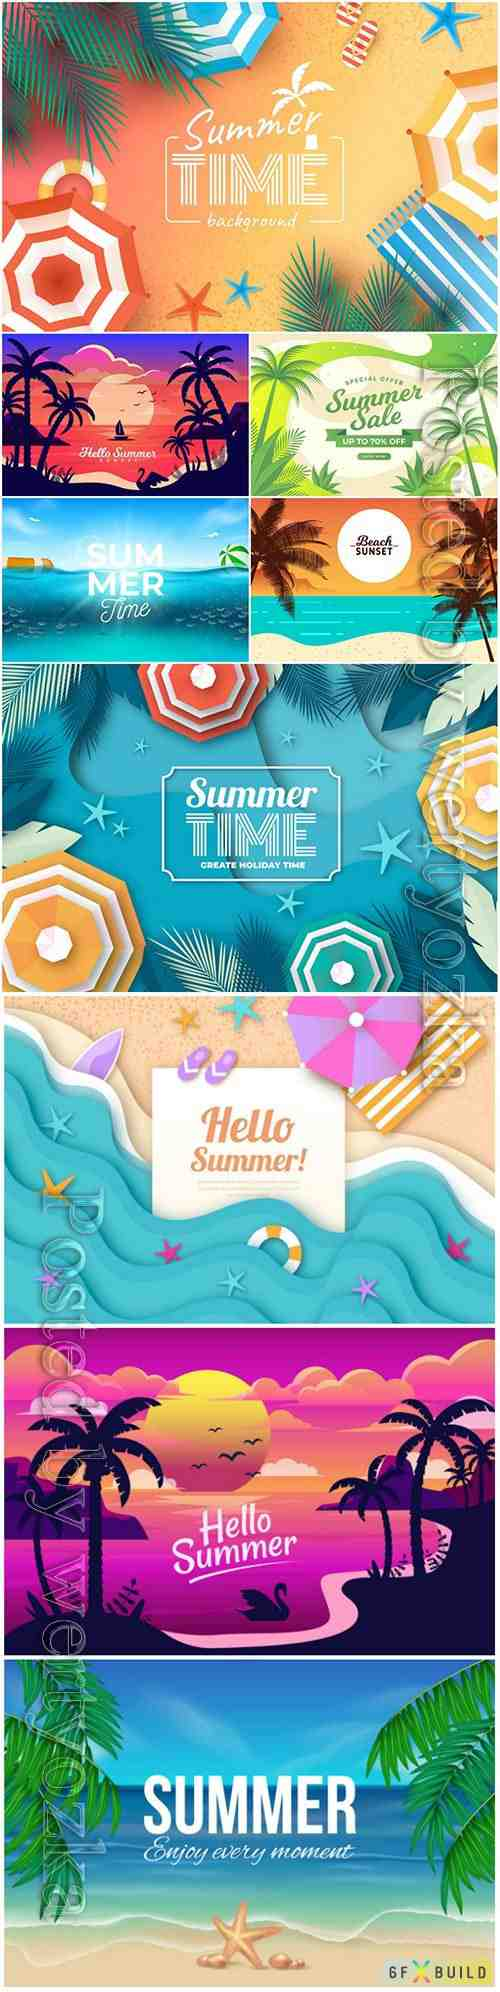 Summer realistic vector background with beach